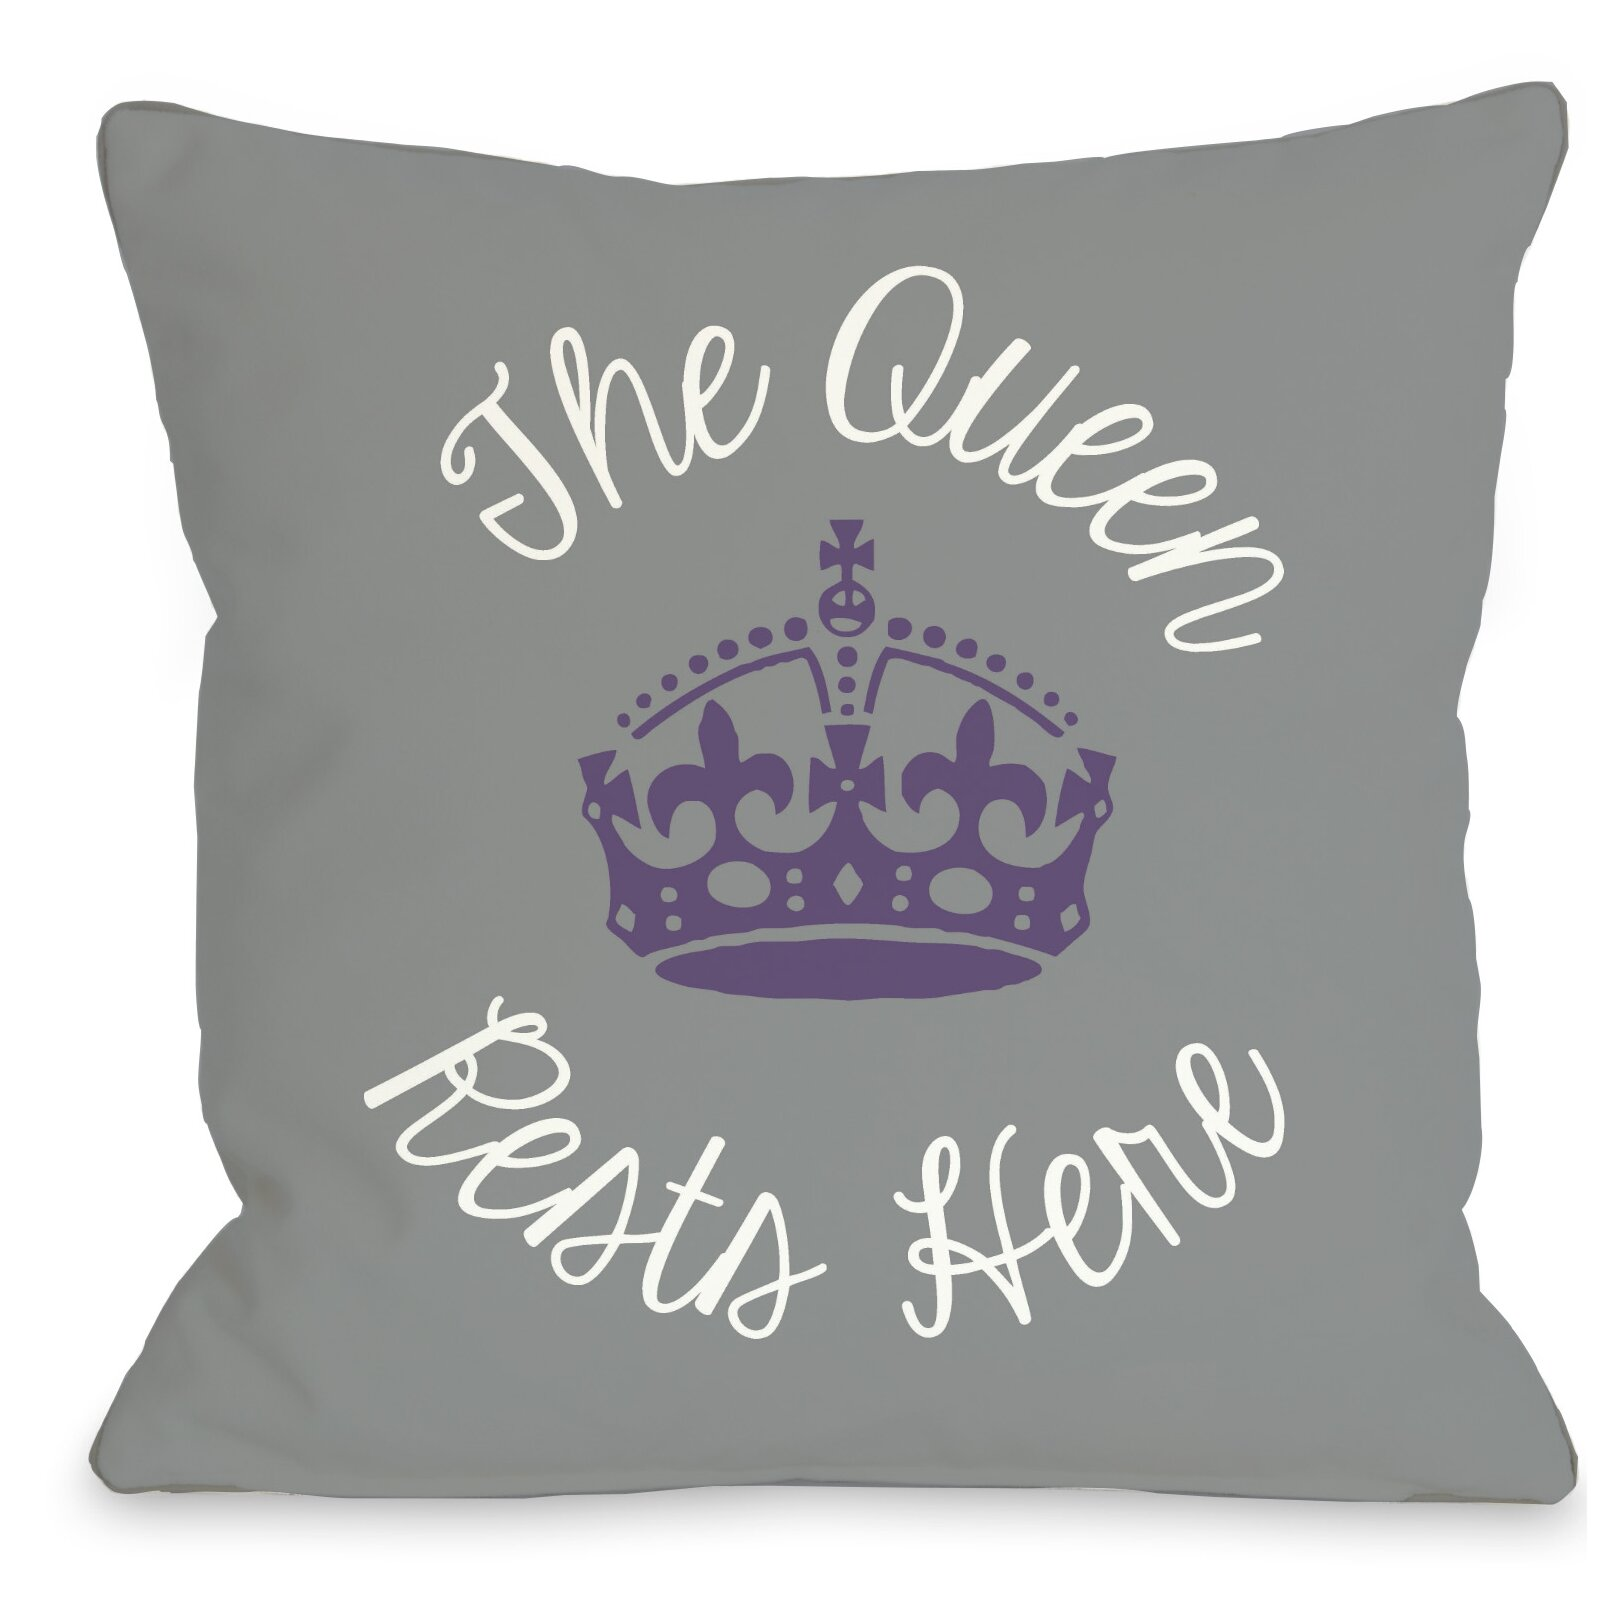 Queen Throw Pillow : One Bella Casa Queen Rests Here Throw Pillow & Reviews Wayfair